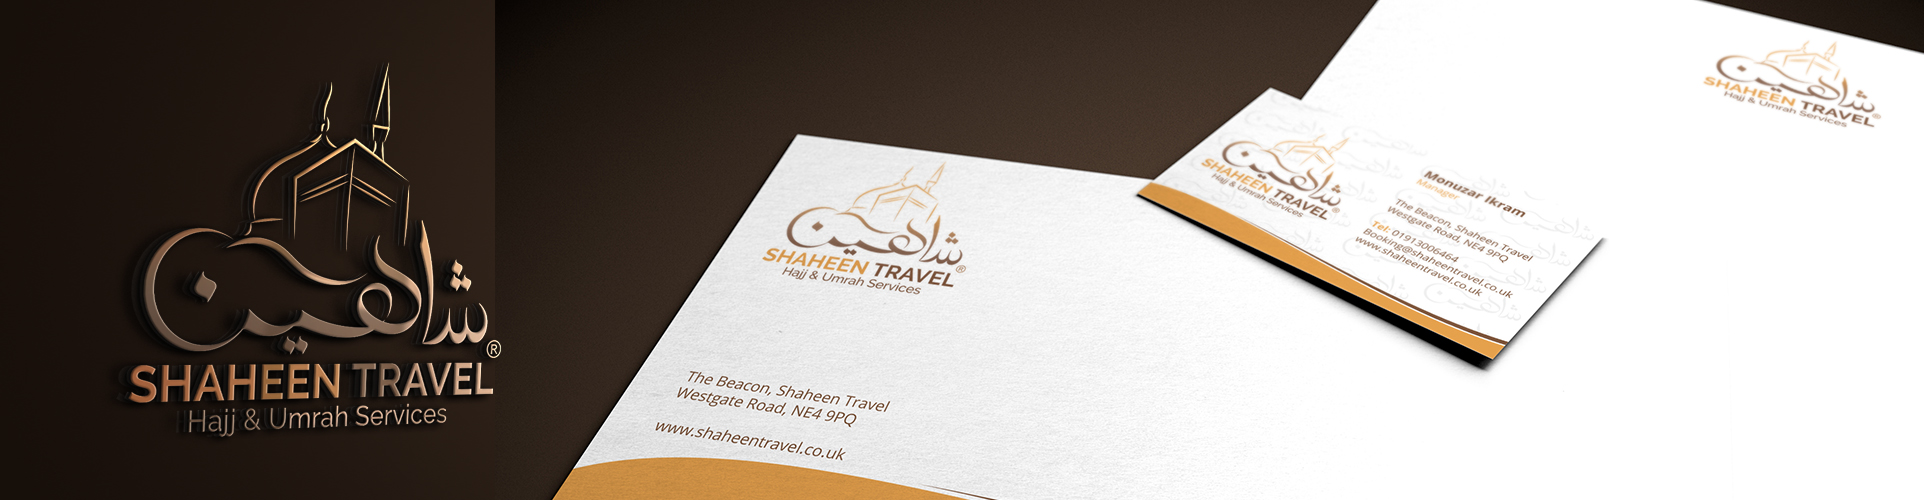 Corporate Identity Design for Shaheen Travel